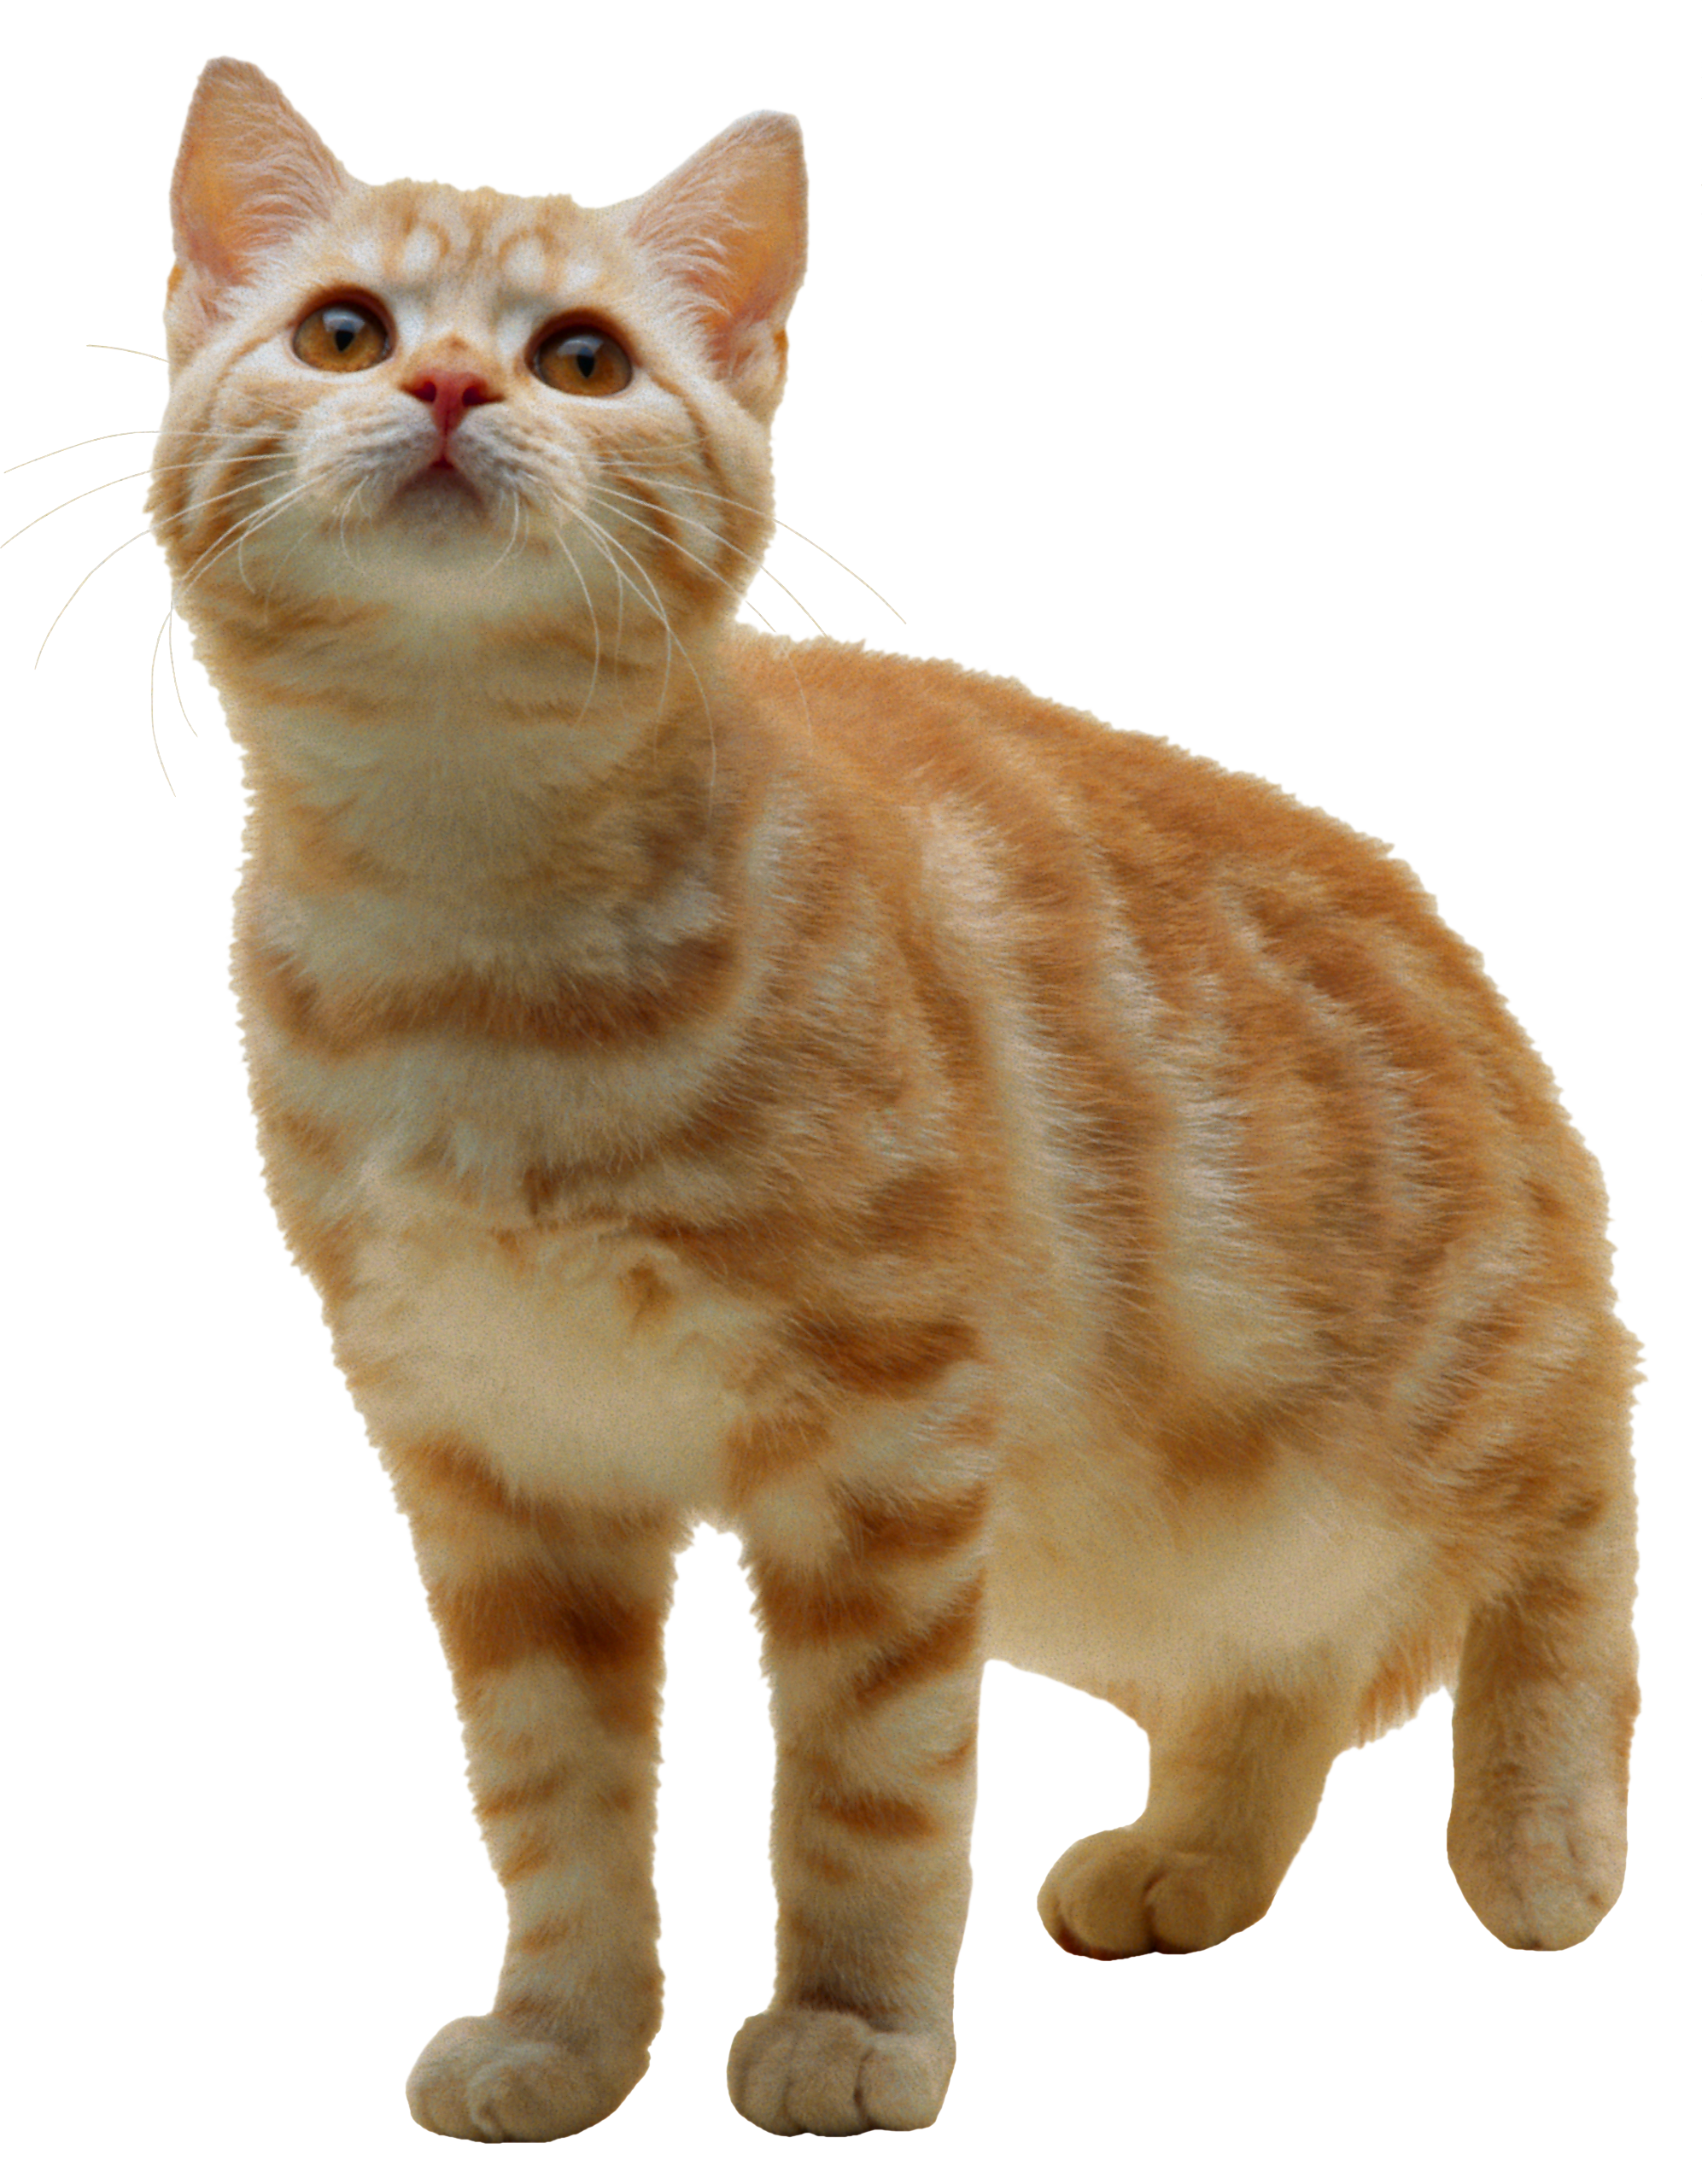 cat png image, free download picture, kitten - Kitten PNG HD